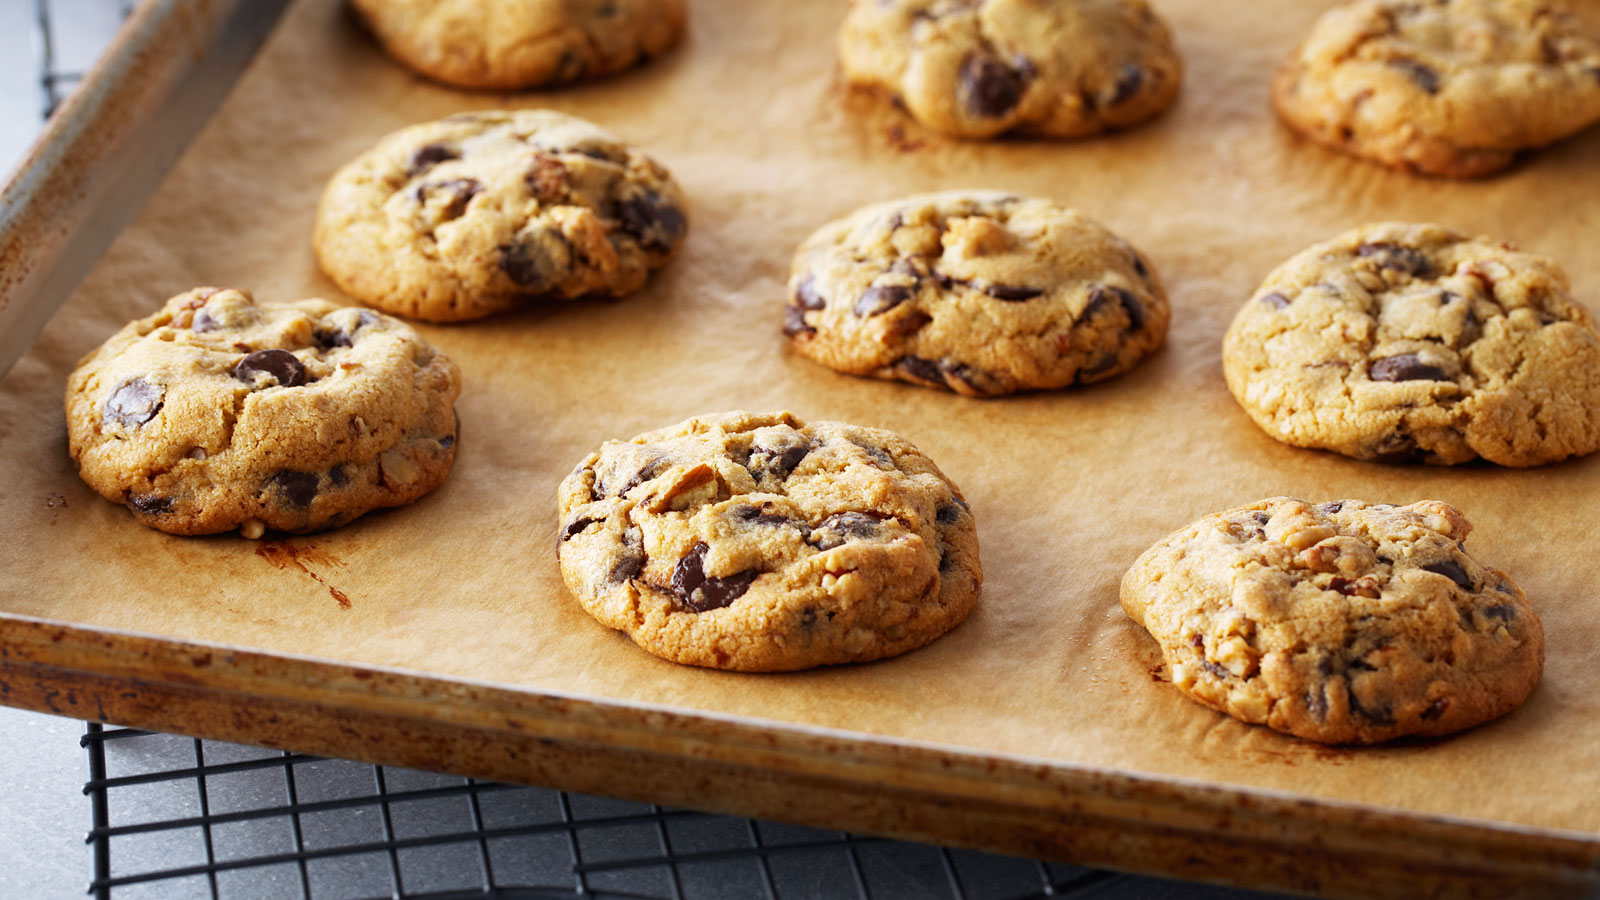 Tivoli Chocolate Chip Cookies